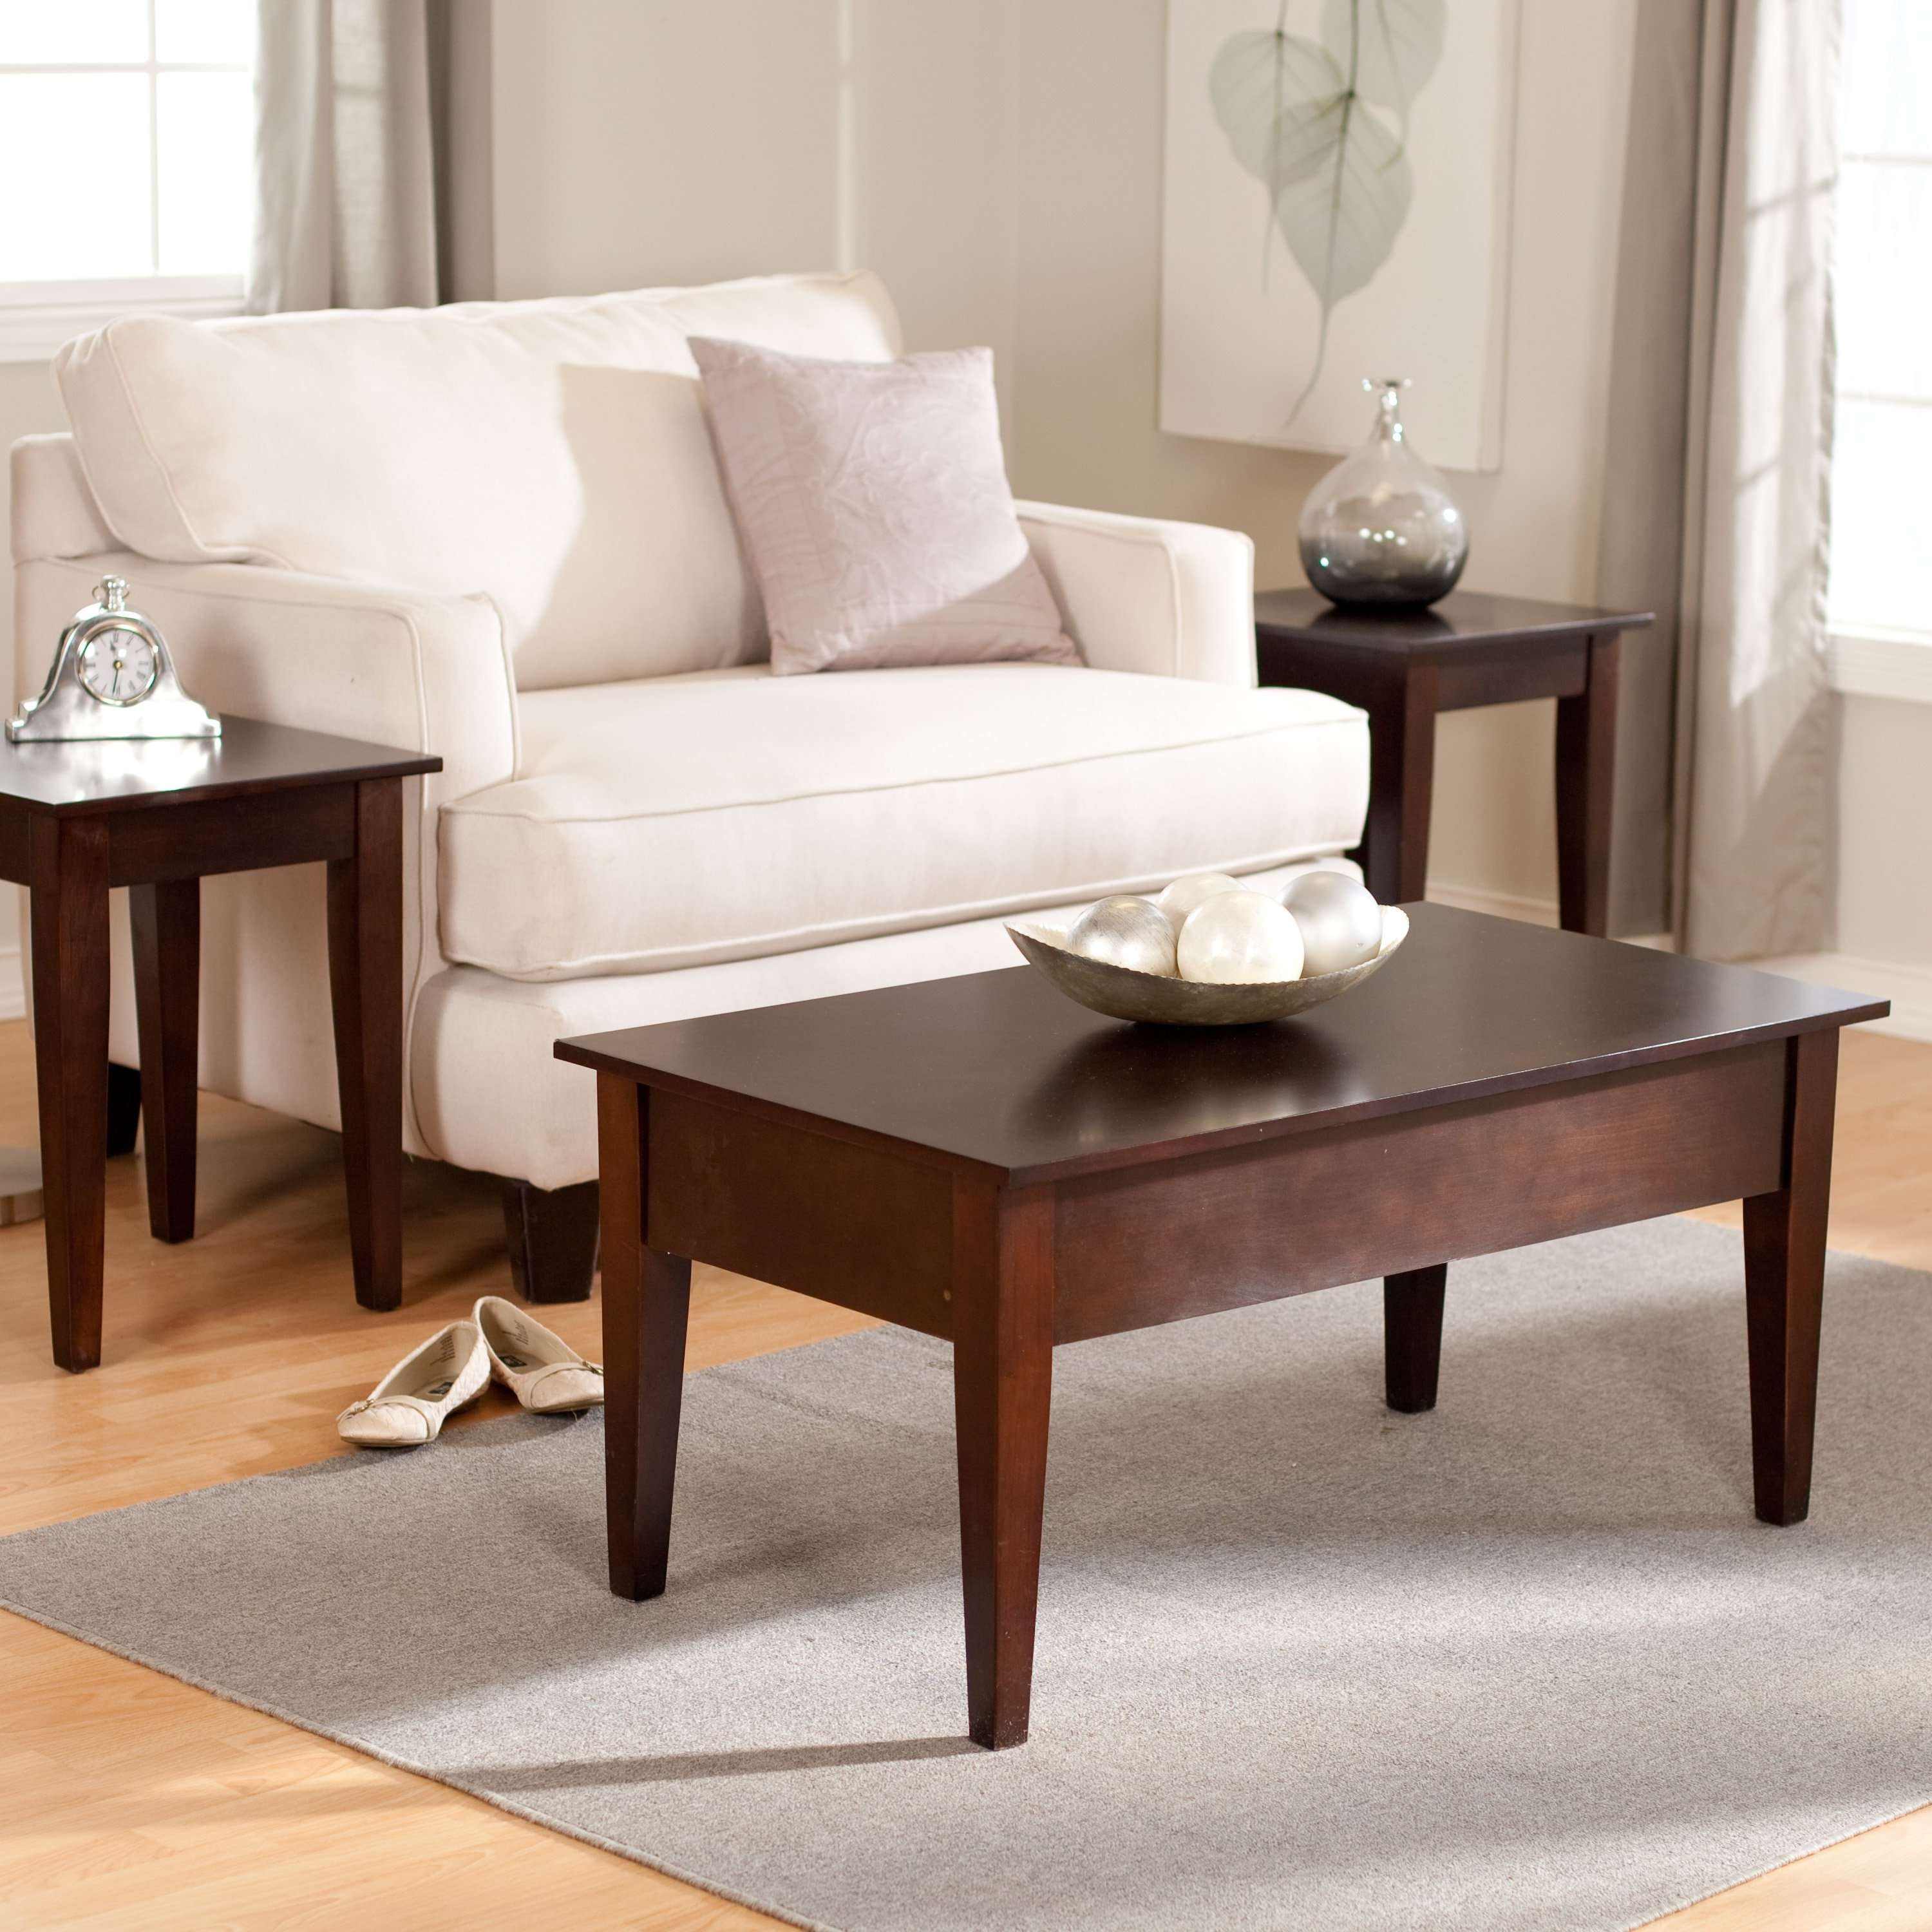 Hayneedle Within Best And Newest Espresso Coffee Tables (Gallery 11 of 20)